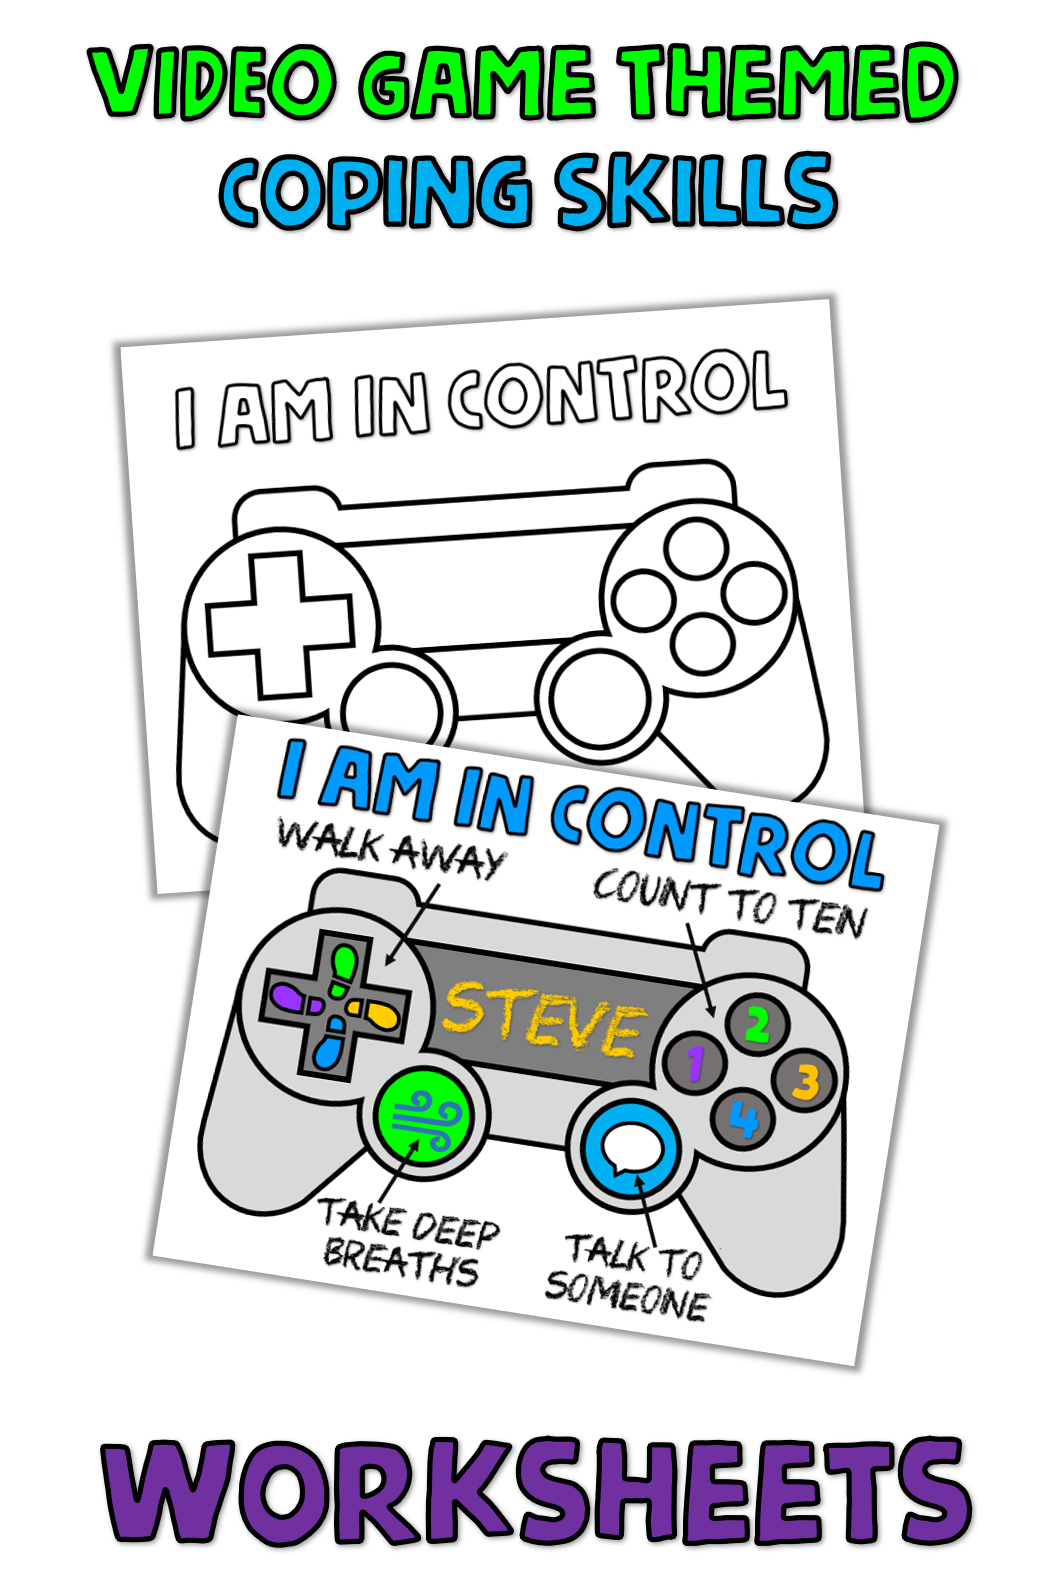 Video Game Controller Coping Strategies Worksheet With